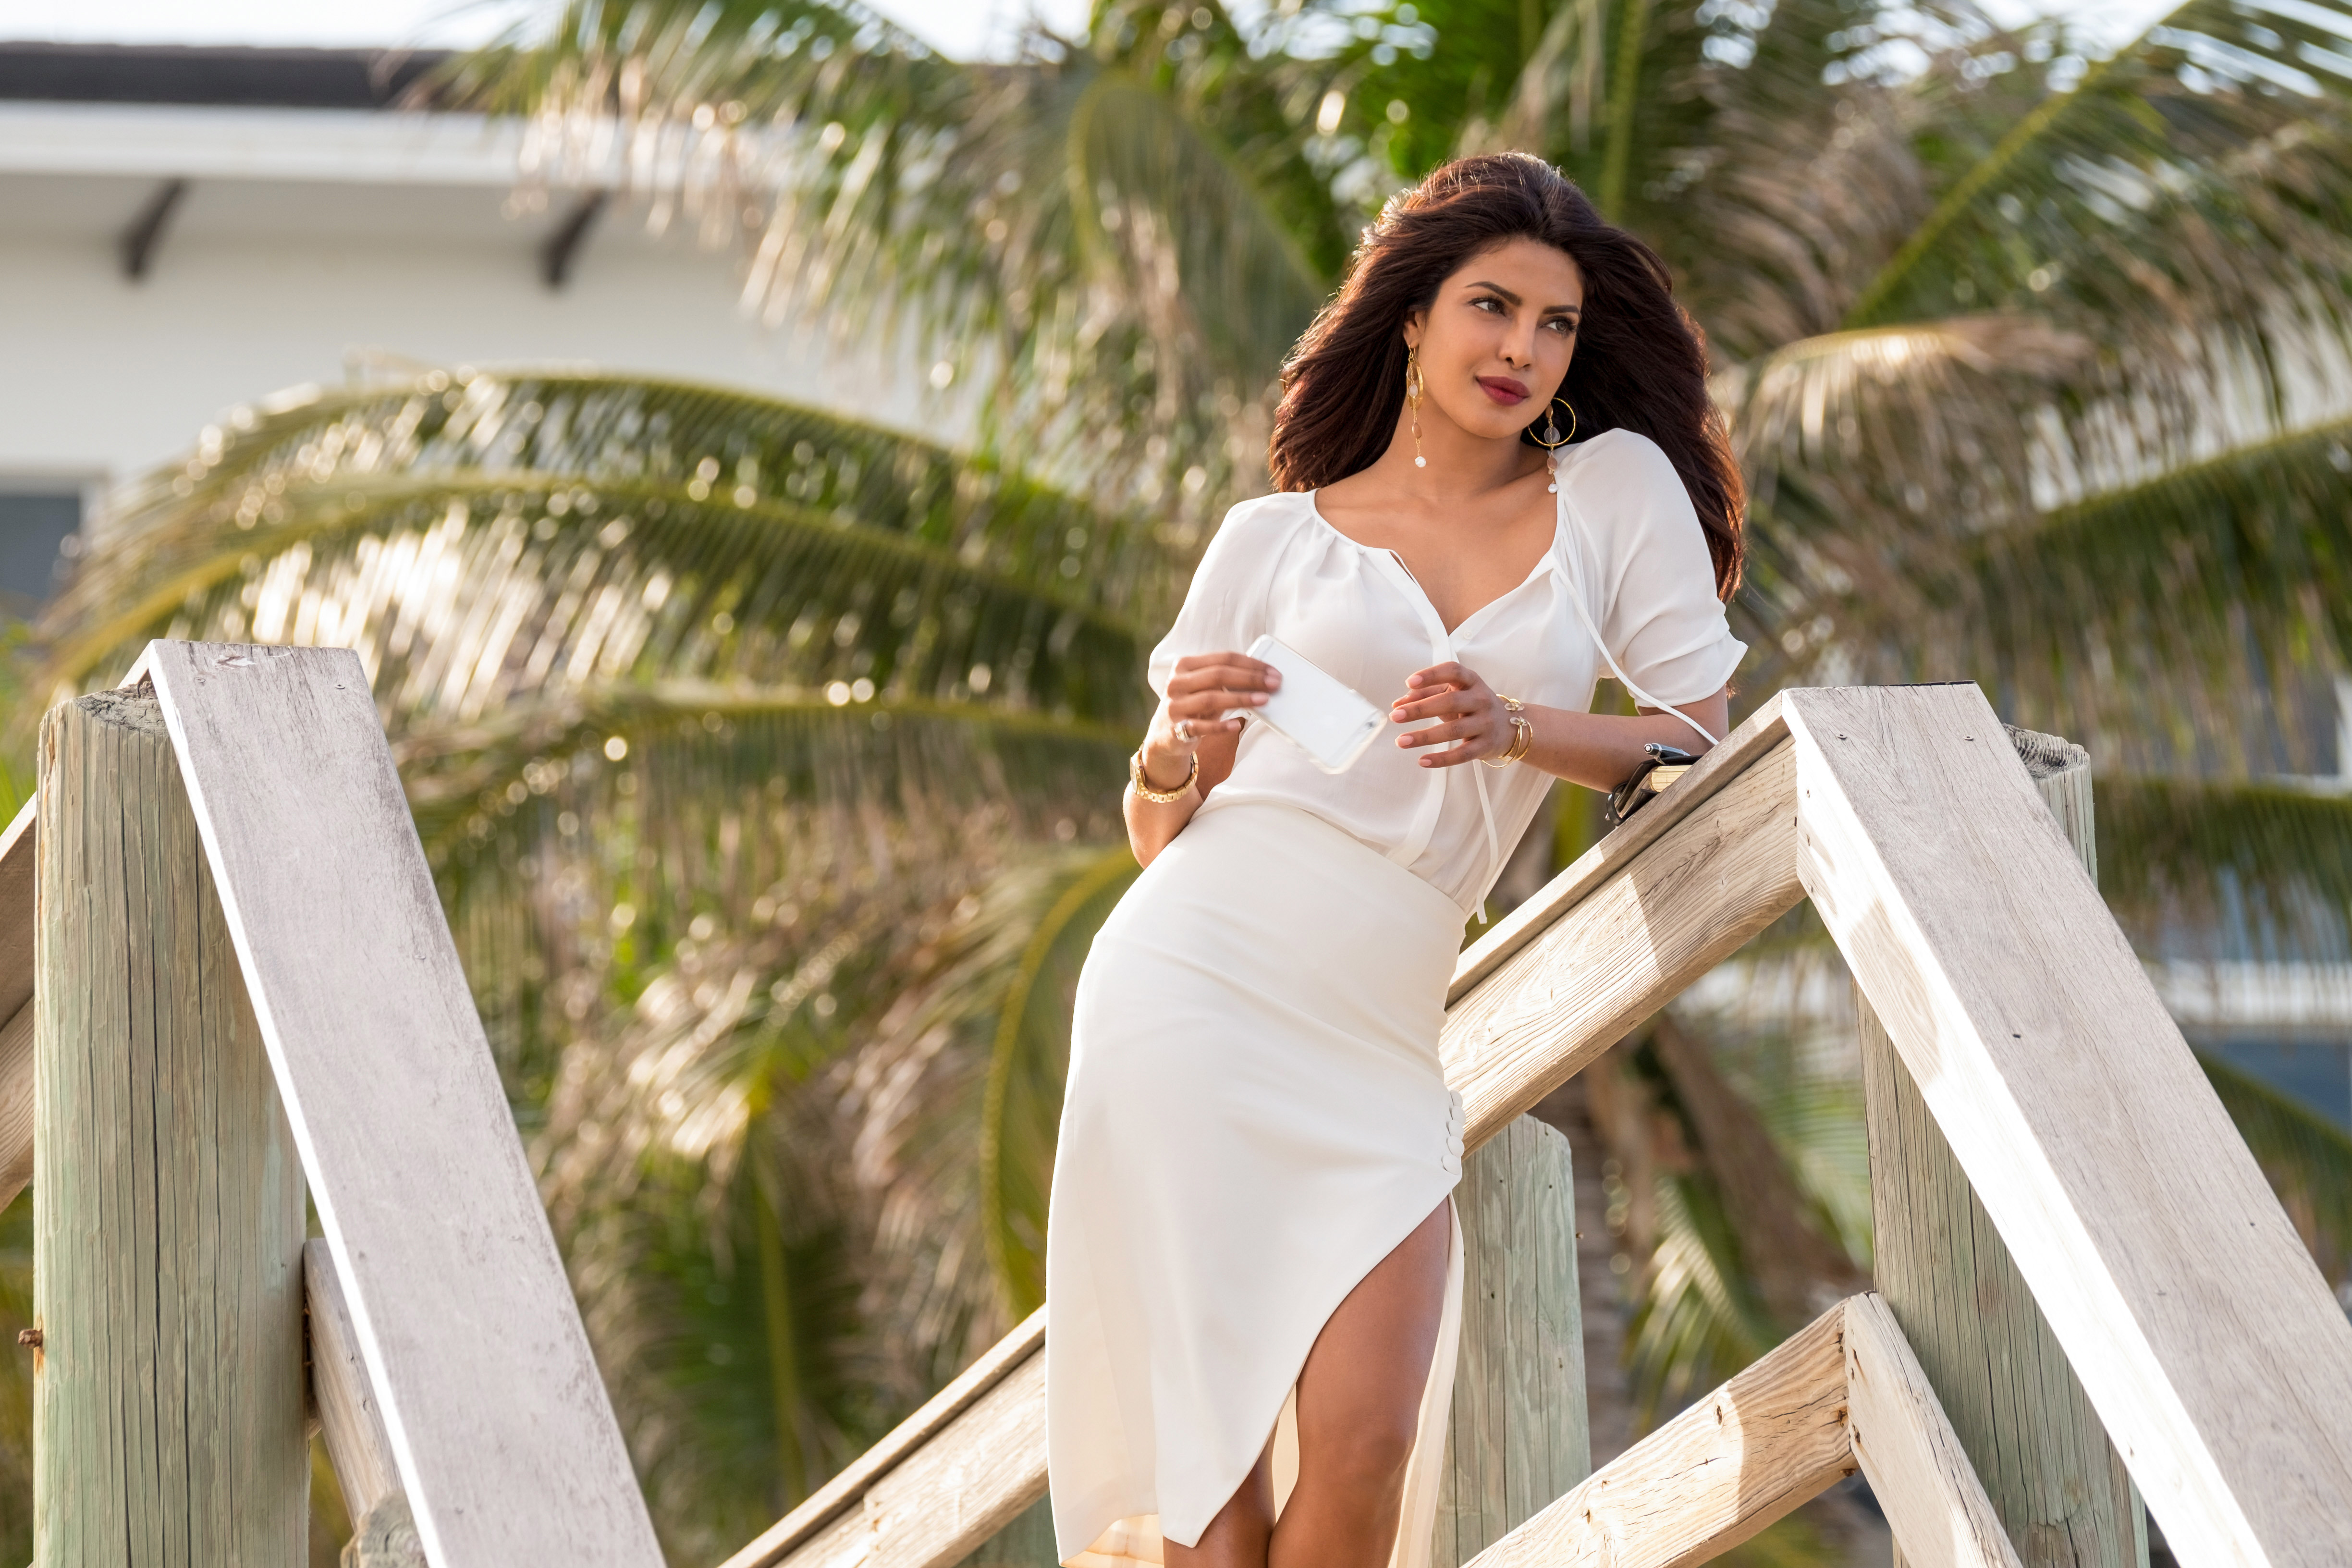 Life After the Engagement: What's Next In Store for Priyanka Chopra?